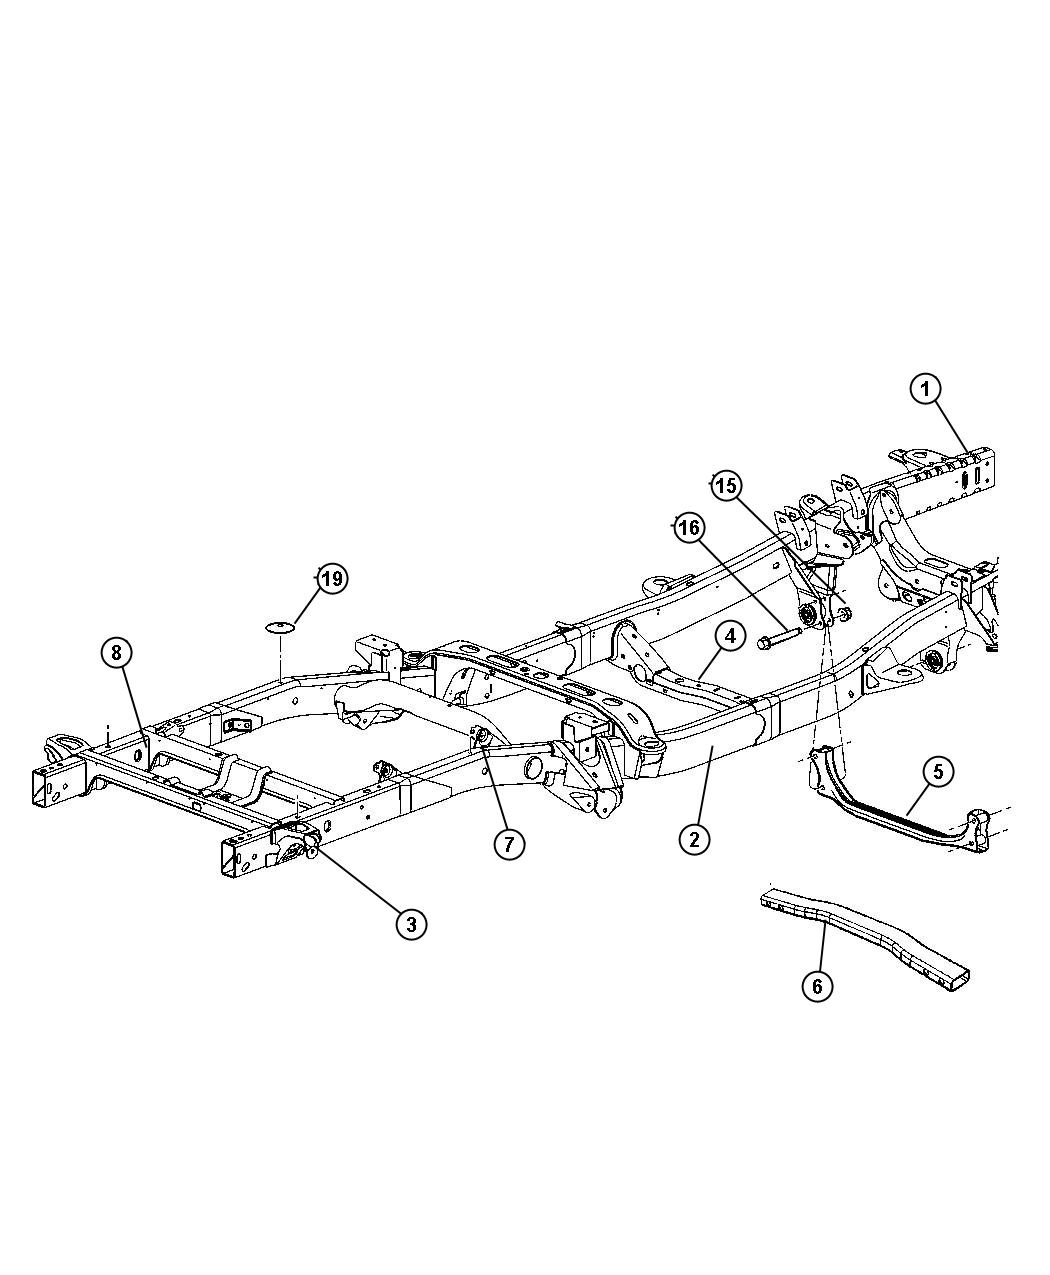 Dodge Ram 1500 Frame assembly. Chassis. [transmissions